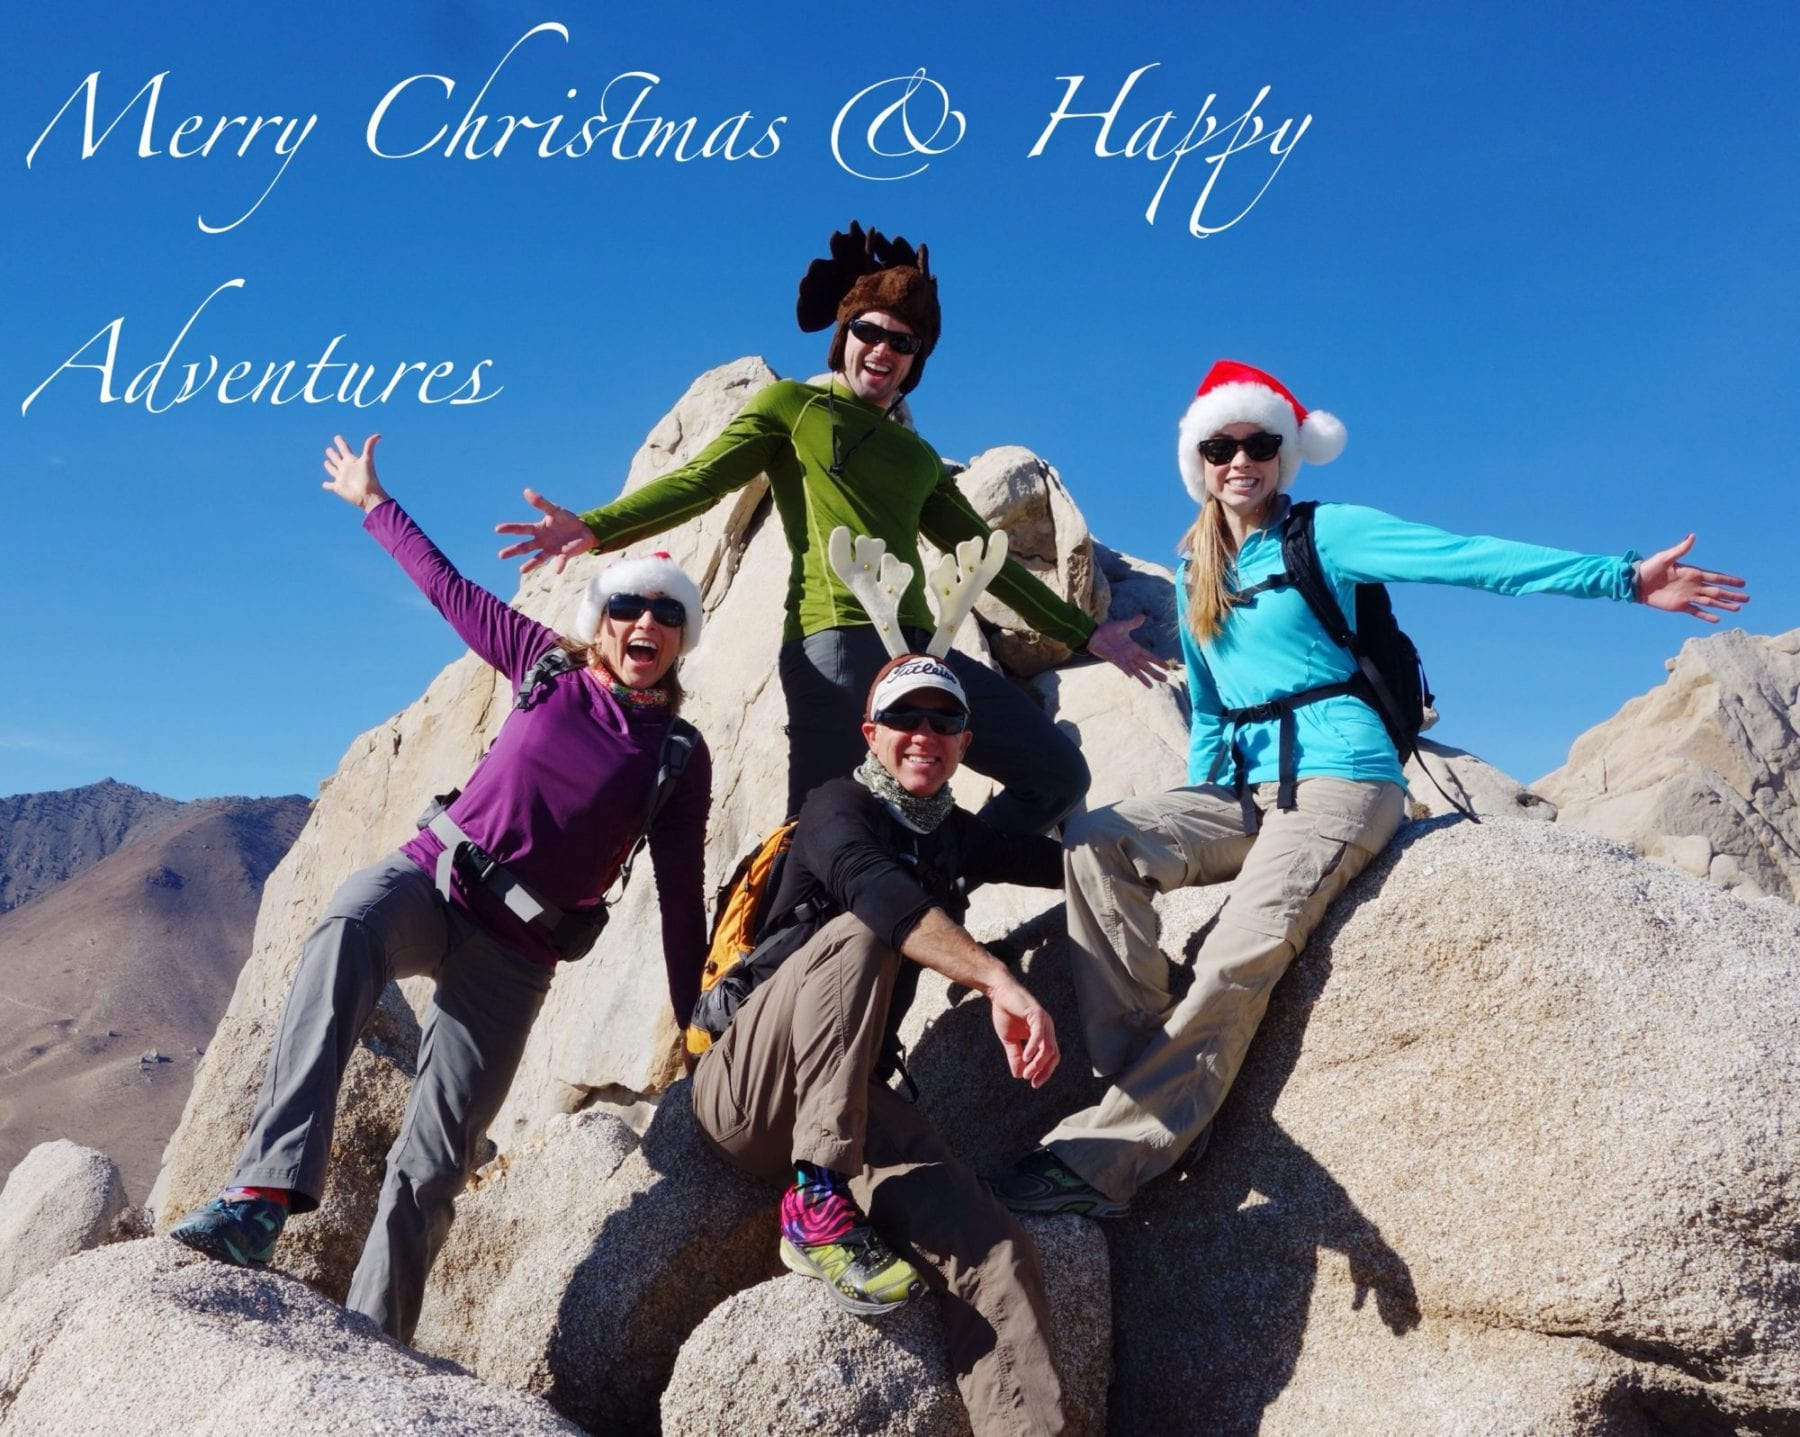 Merry Christmas from Five Fingers Peak